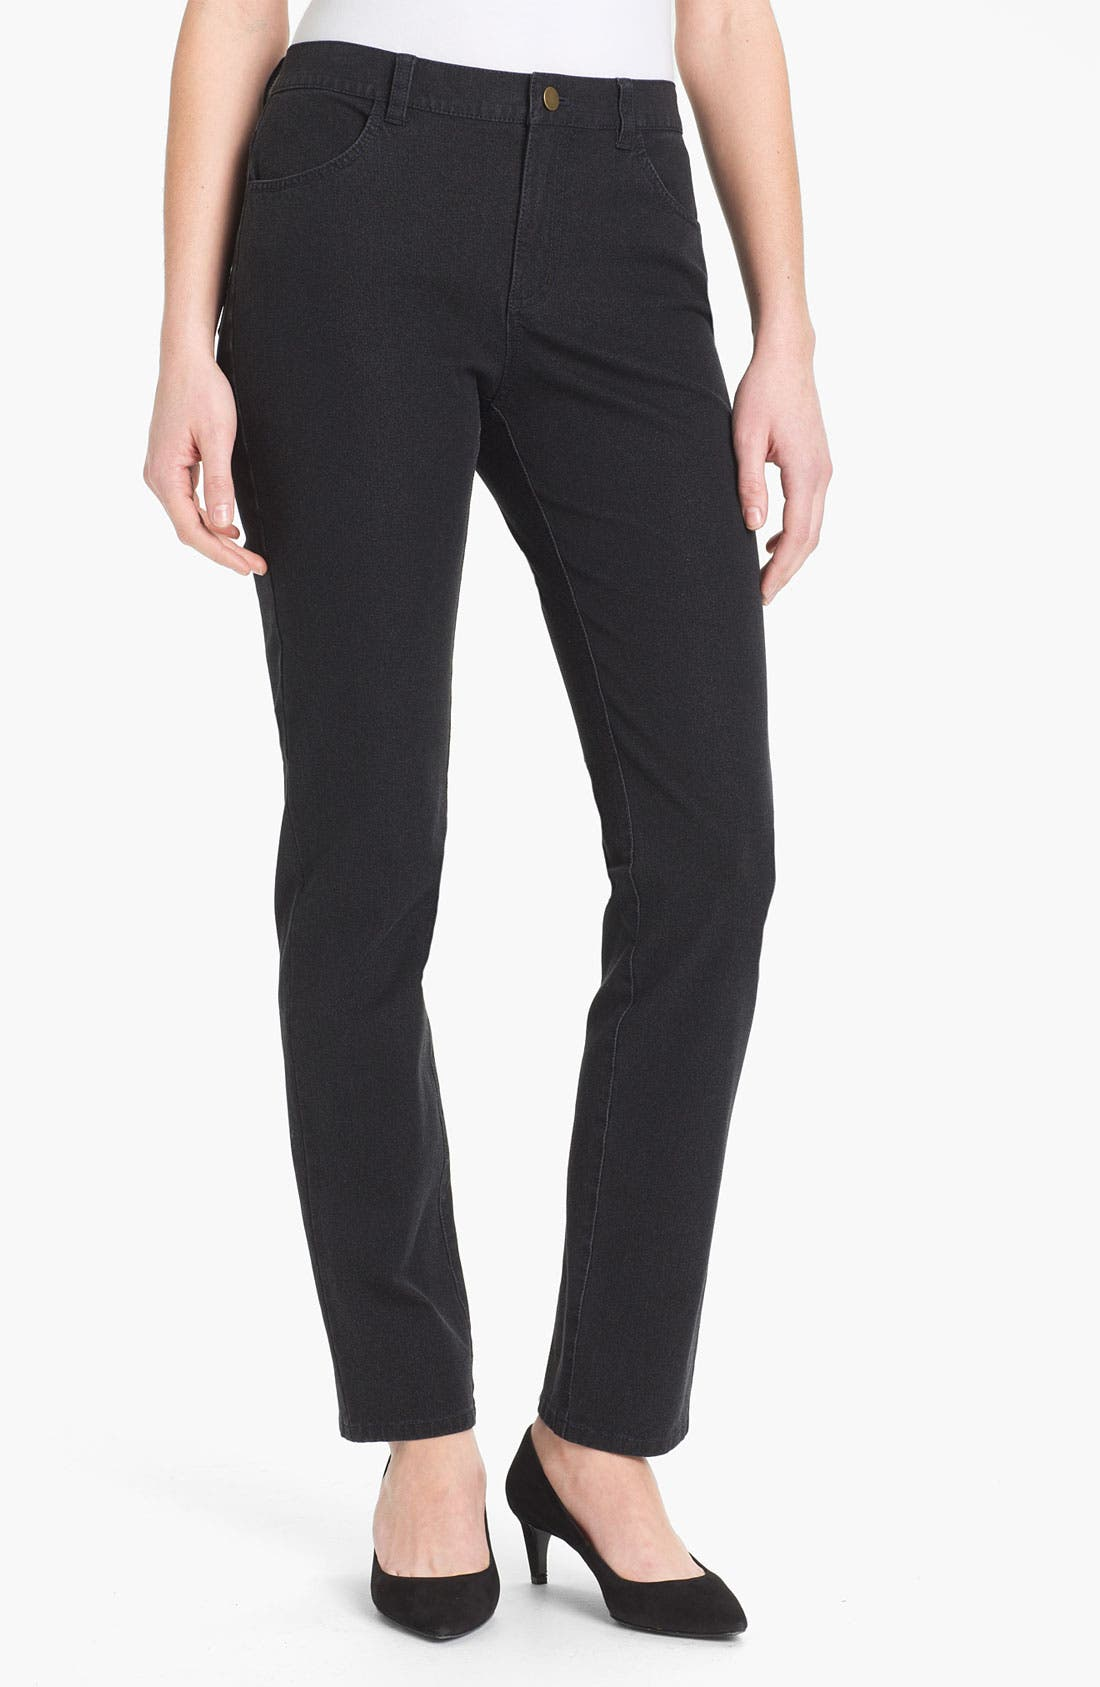 Alternate Image 1 Selected - Lafayette 148 New York Slim Leg Curvy Stretch Jeans